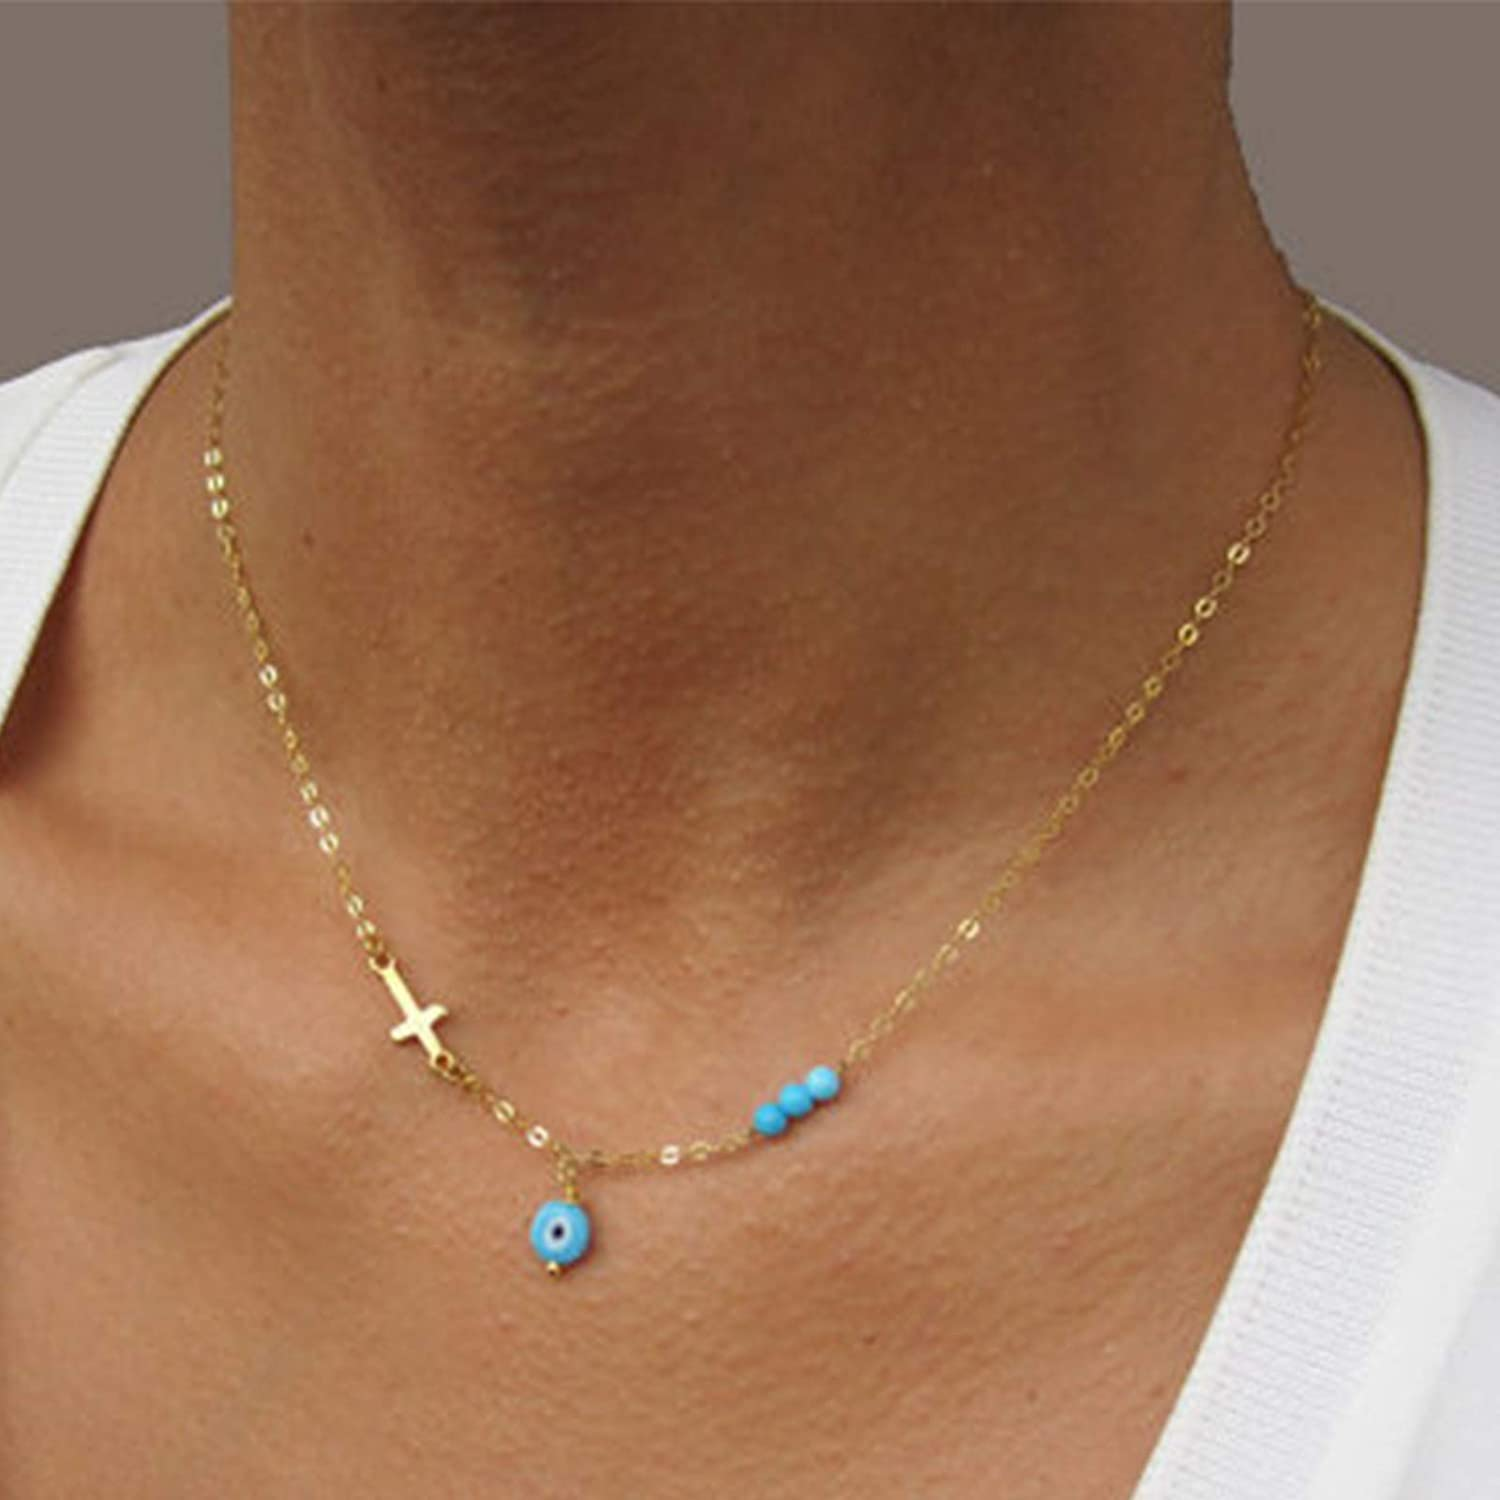 Sttiafay Boho Evil Eye Pendant Necklace Dainty Cross Clavicle Chain Turquoise Bead Choker Necklace Chain Jewelry for Women Girls